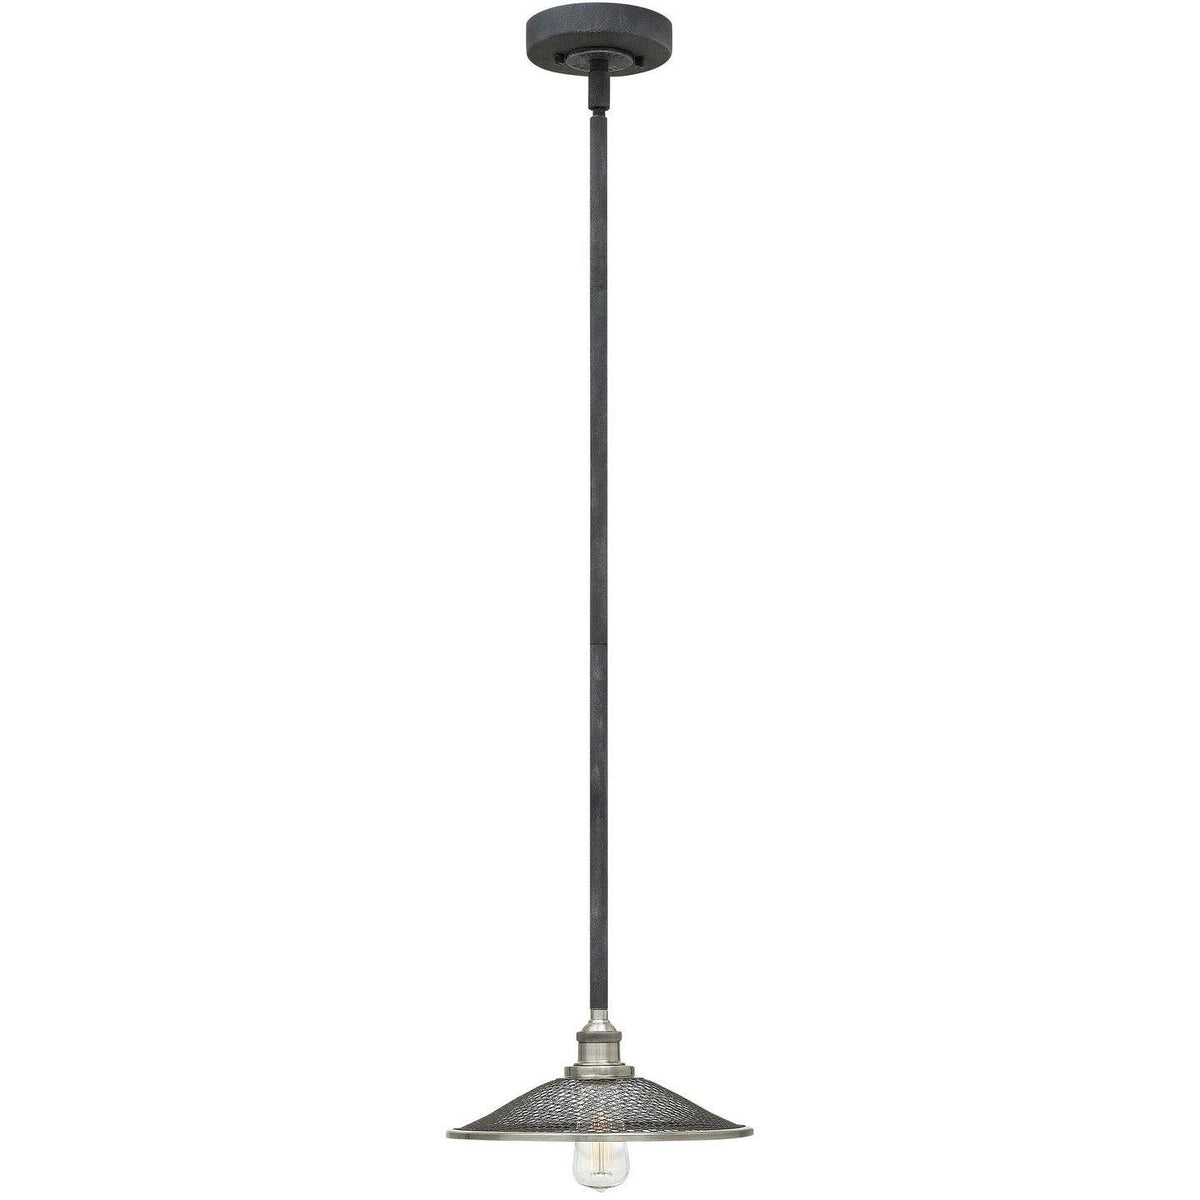 Hinkley Canada - 4367DZ - One Light Pendant - Rigby - Aged Zinc